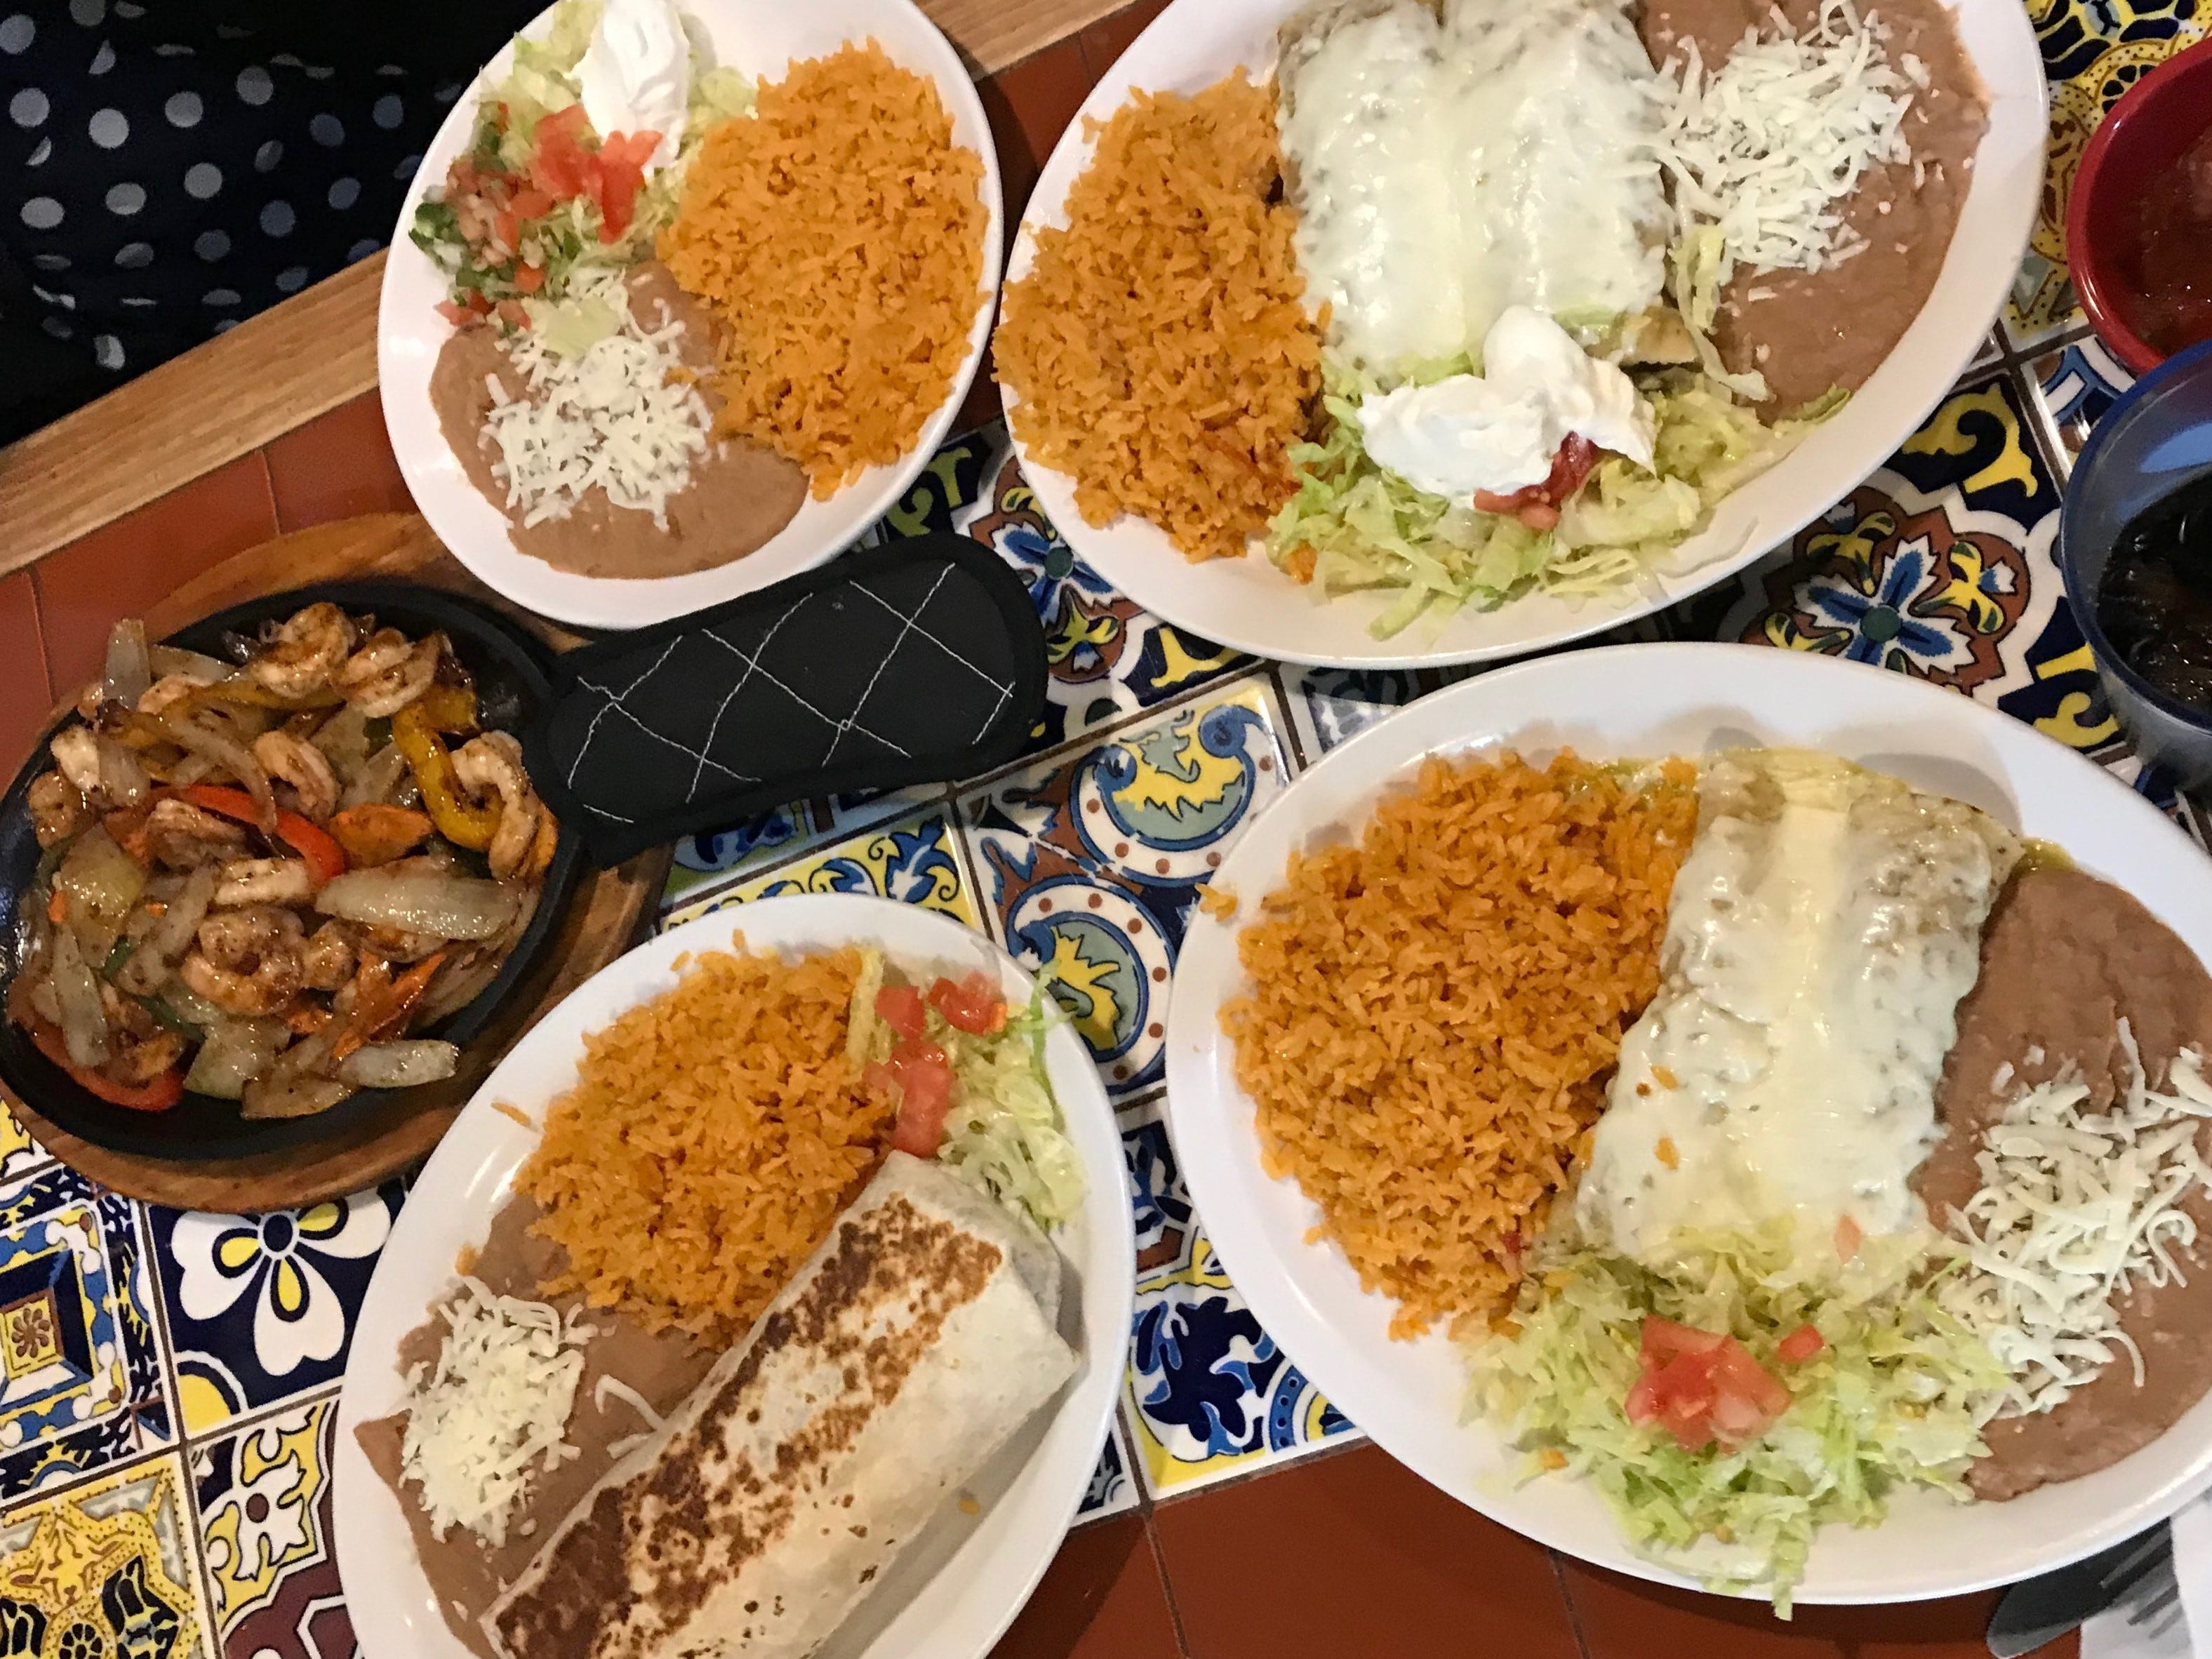 The Press staff's food during lunch on Tuesday, Dec. 4 at 2 Amigos.